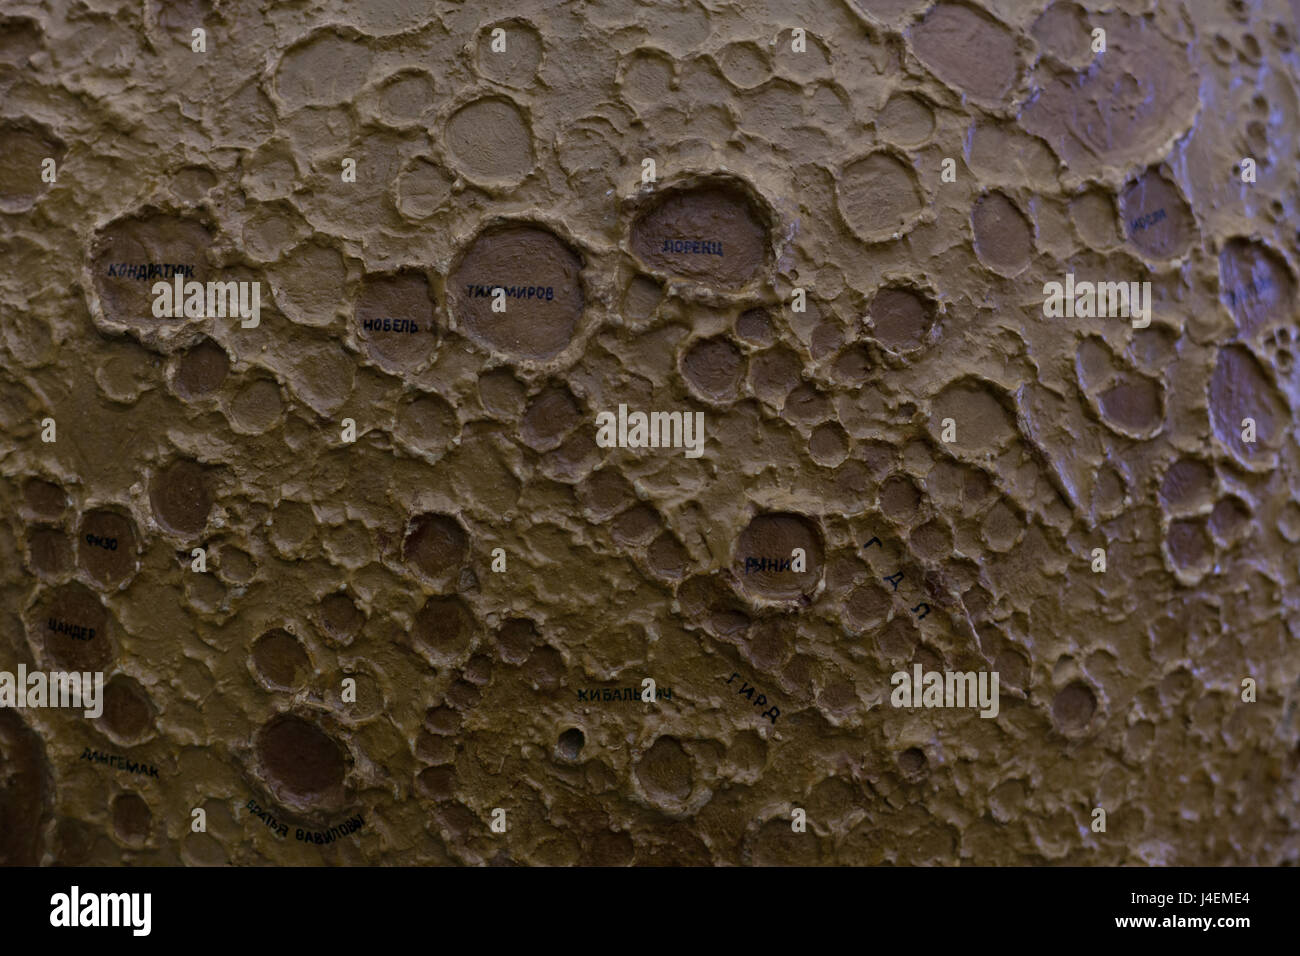 Moon satellite craters, planet space layout - Stock Image